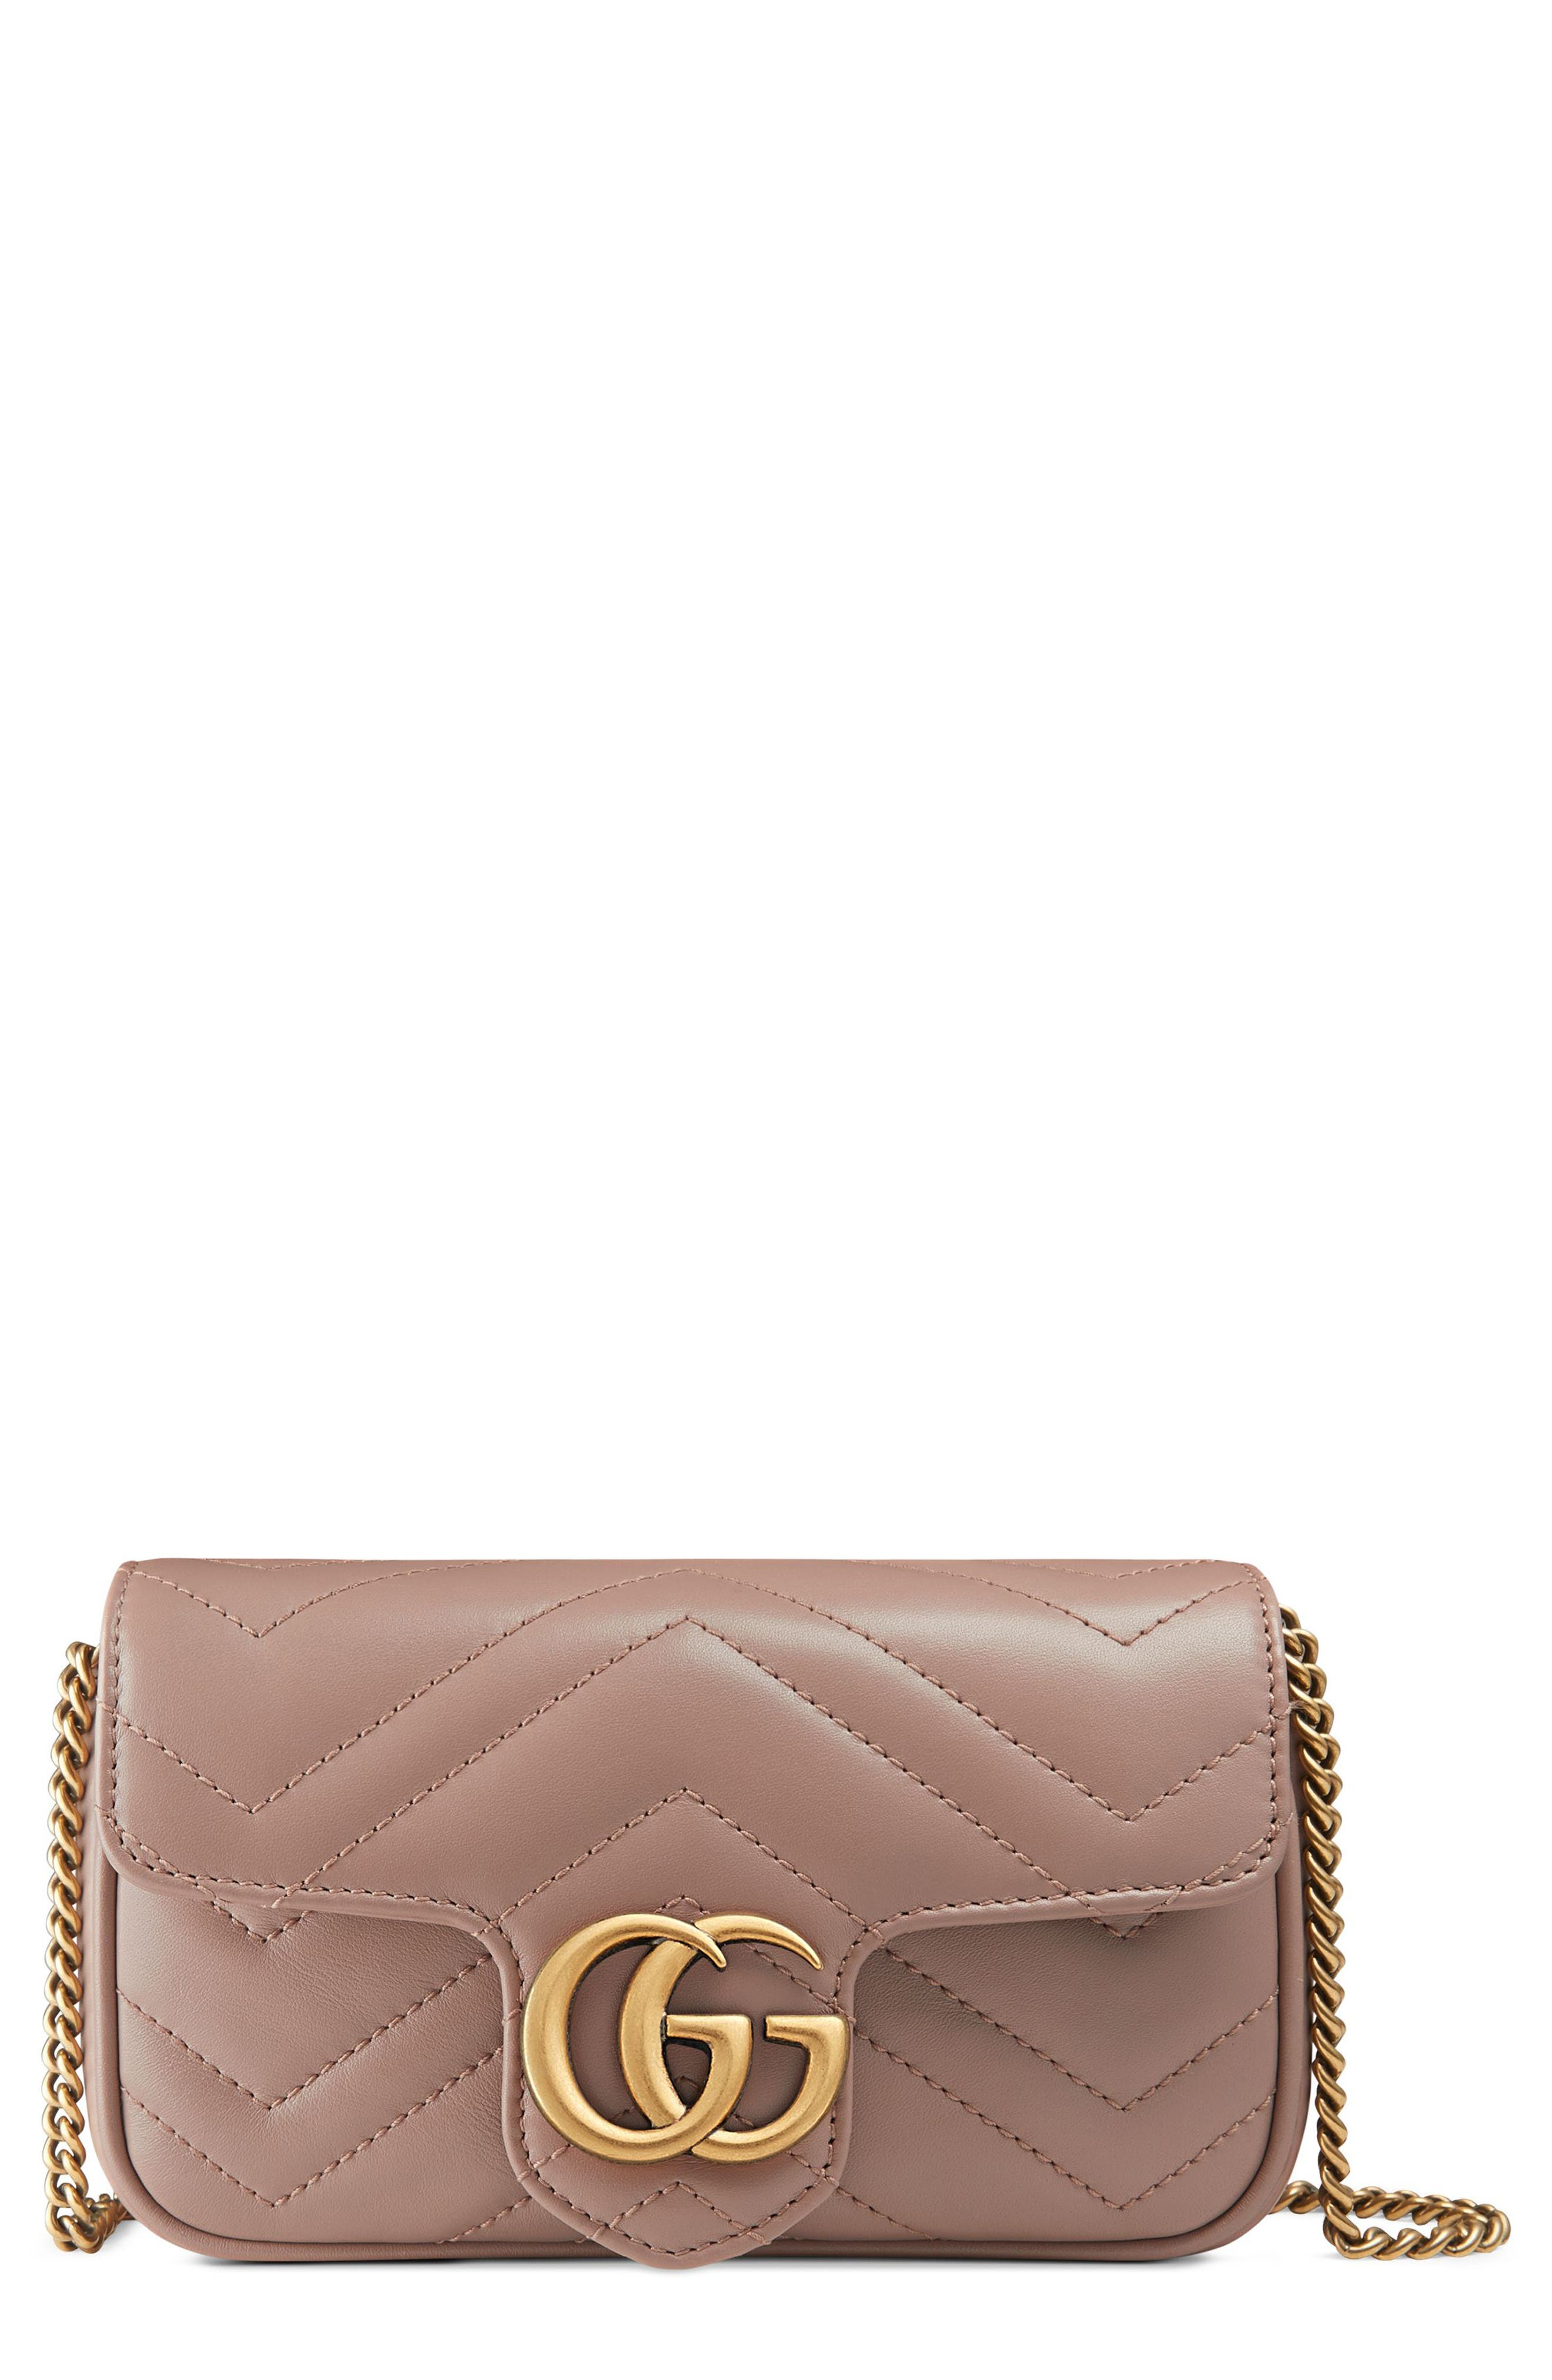 Supermini GG Marmont 2.0 Matelassé Leather Shoulder Bag,                             Main thumbnail 1, color,                             PORCELAIN ROSE